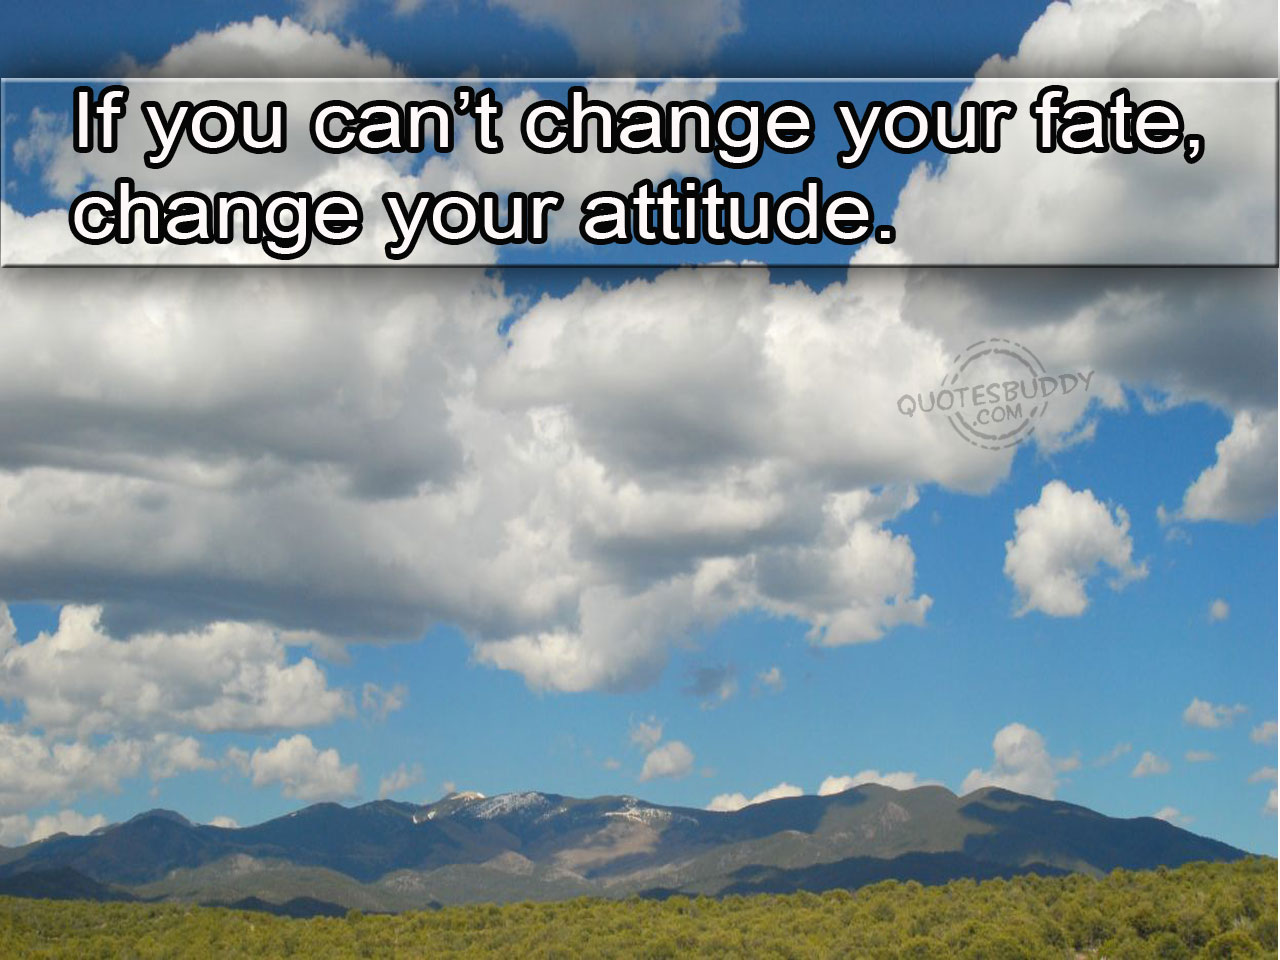 If You Can't Change Your Fate Change Your Attitude.